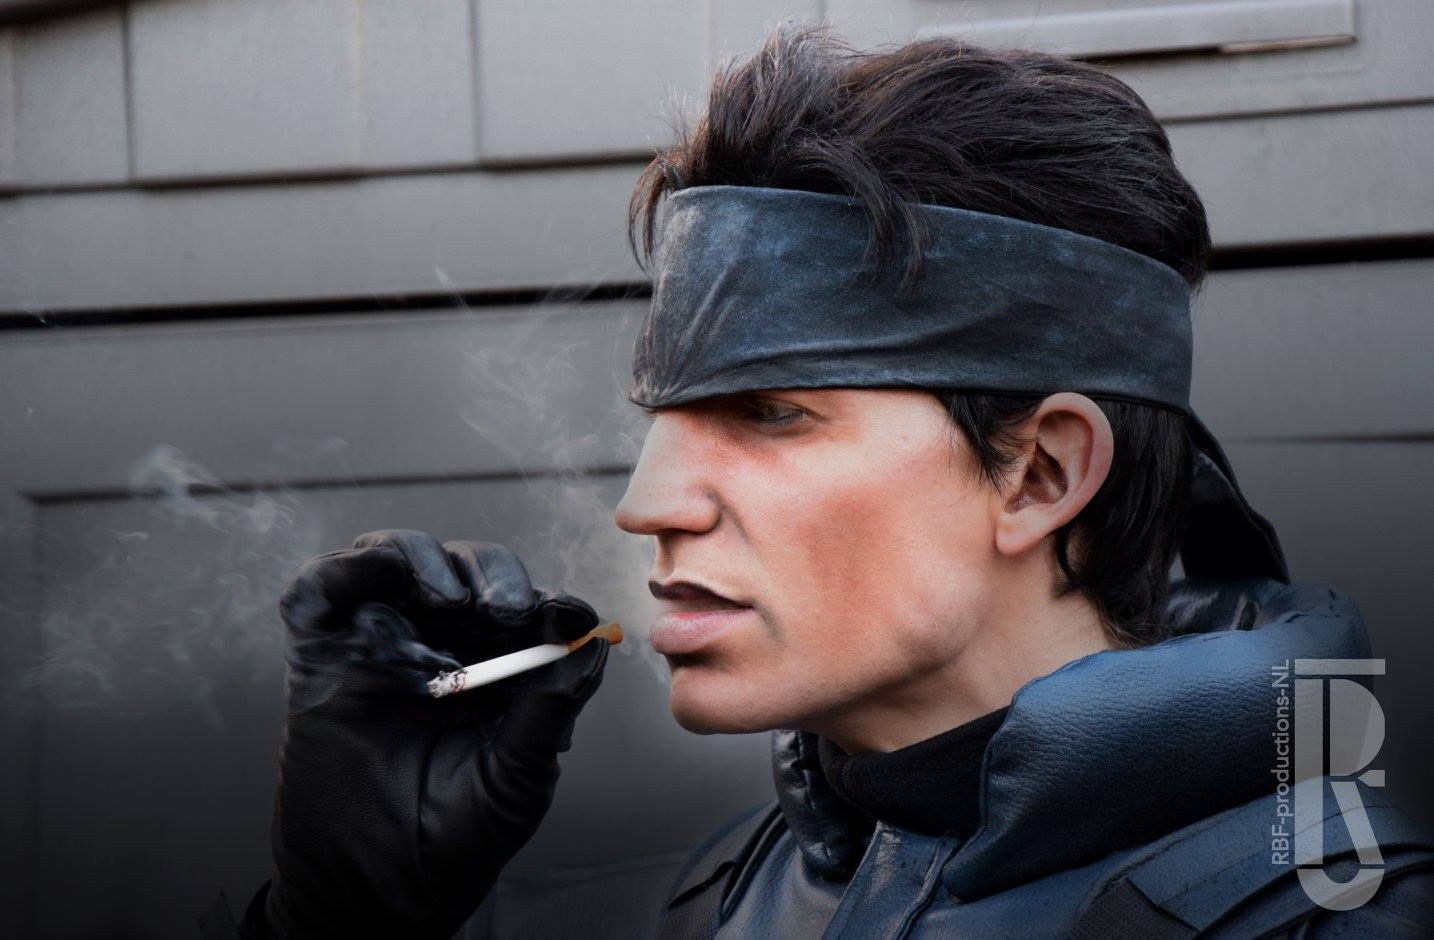 solid snake rbf productions - 04